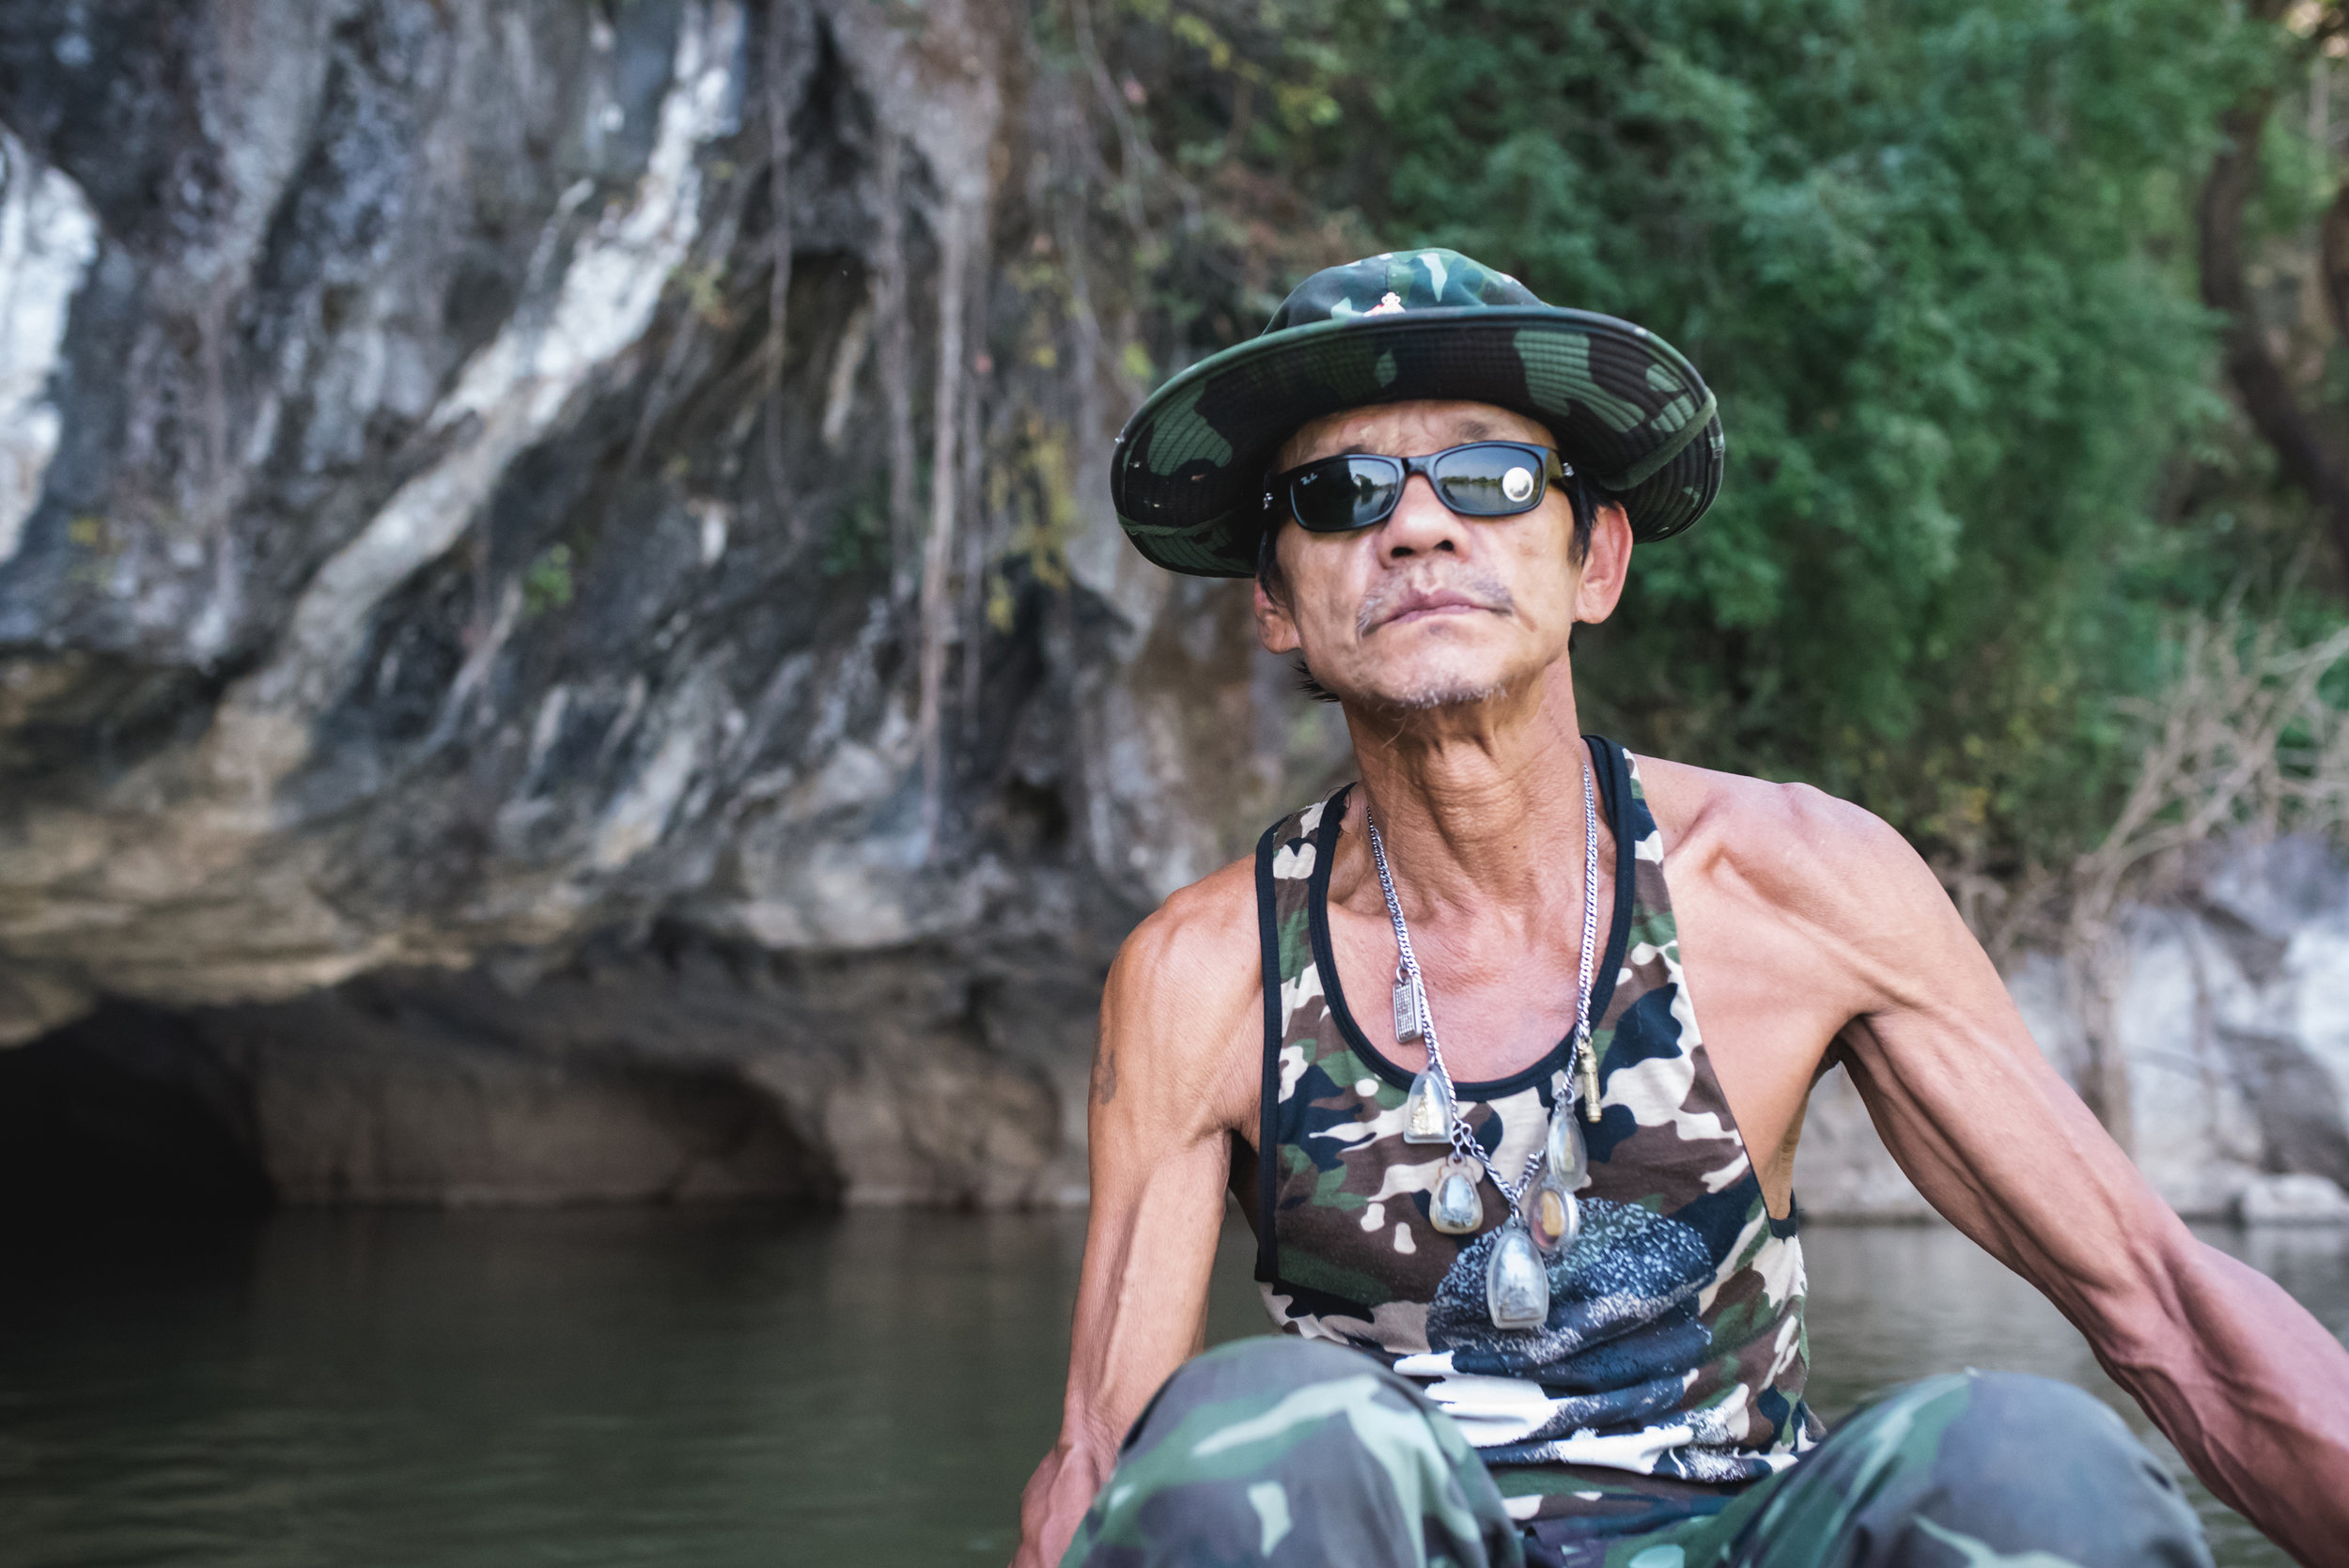 This badass rowed us through some caves.